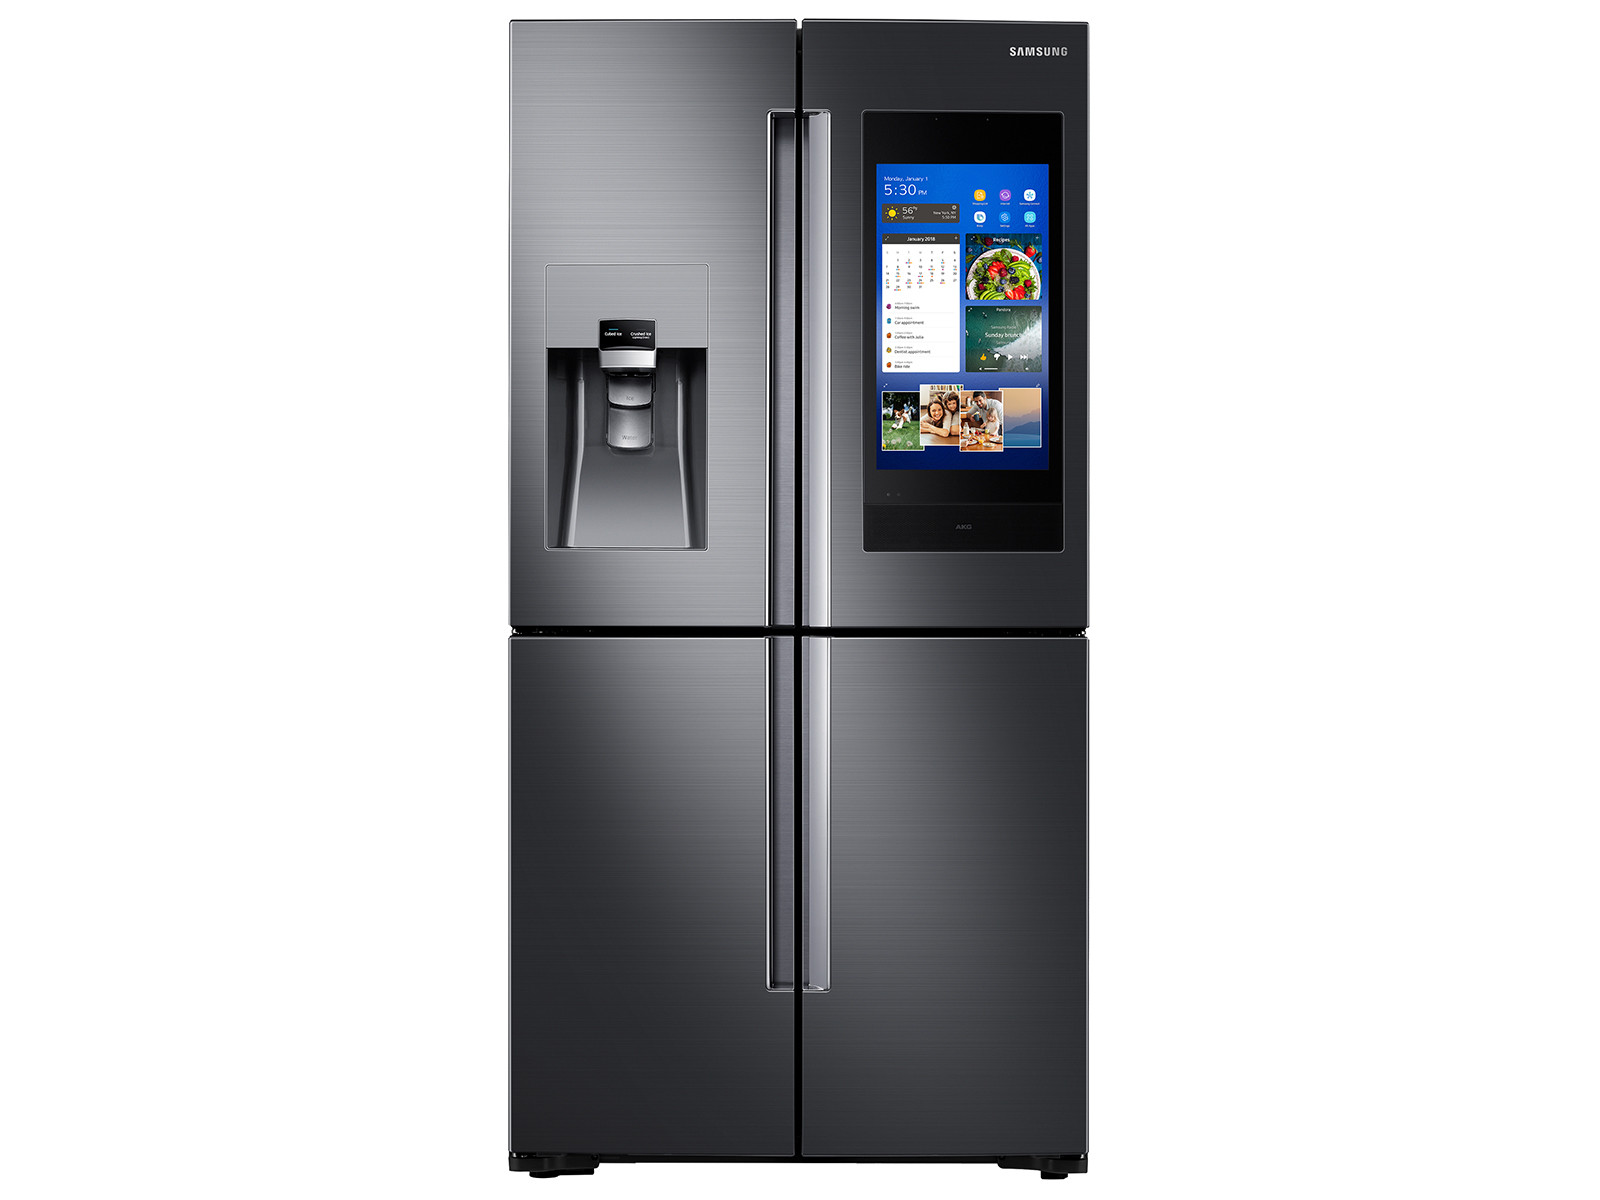 Keeping It Cool with a Smart Refrigerator